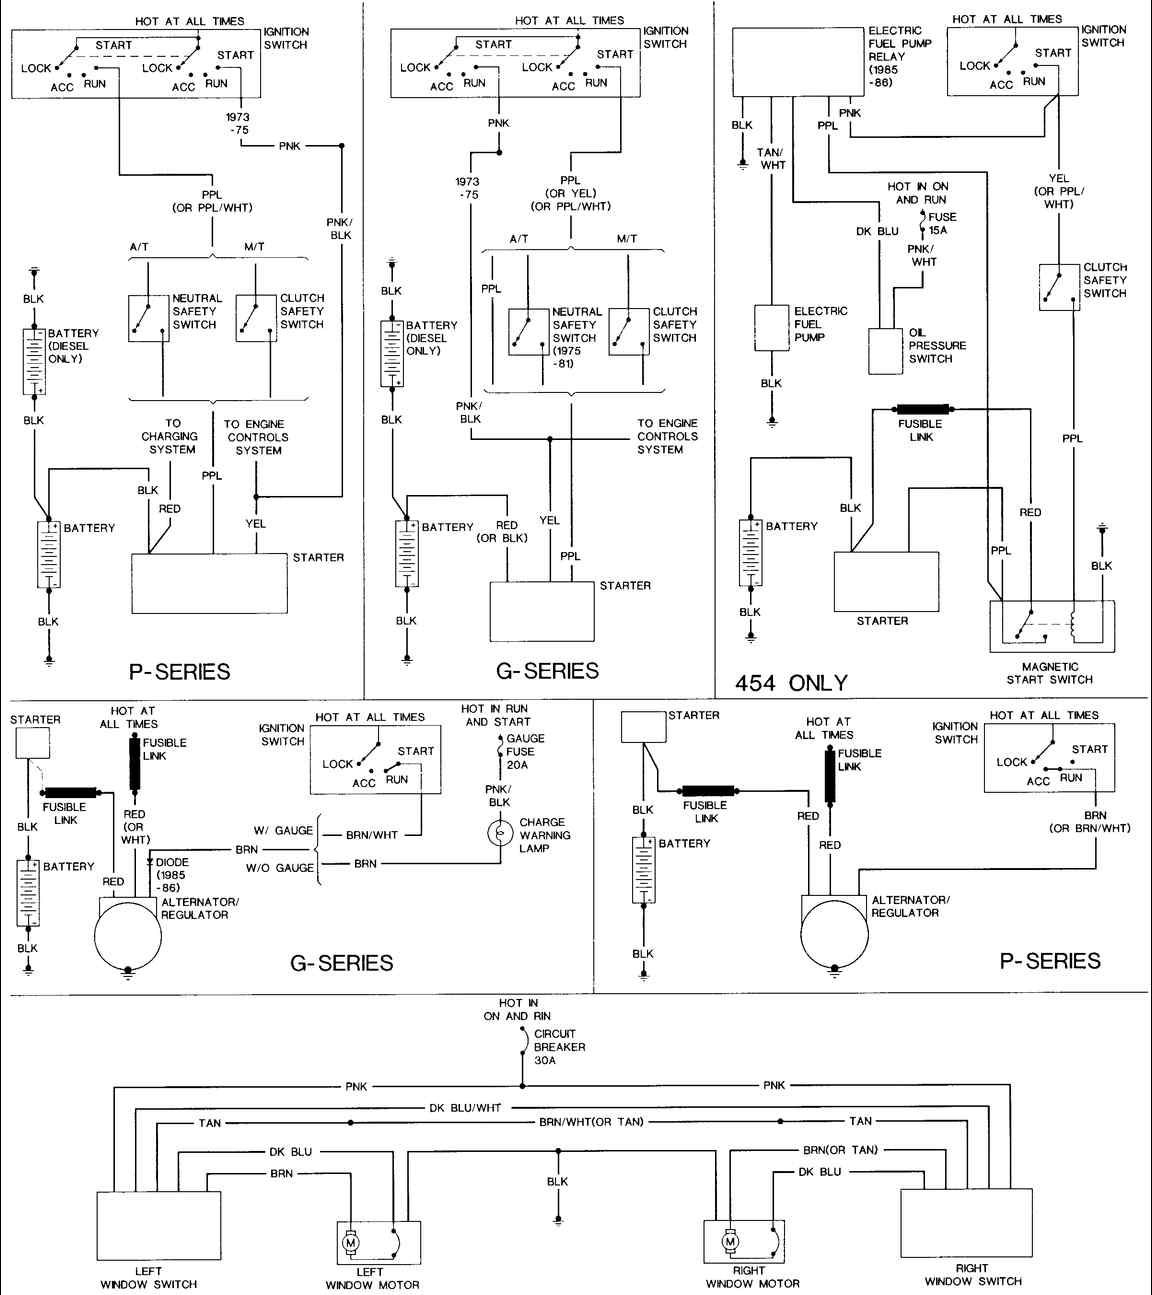 0c73623a181dc376dbb4777e2029d285 85 chevy truck wiring diagram 85 chevy van the steering column 1964 Chevy Pickup Wiring Diagram at bayanpartner.co